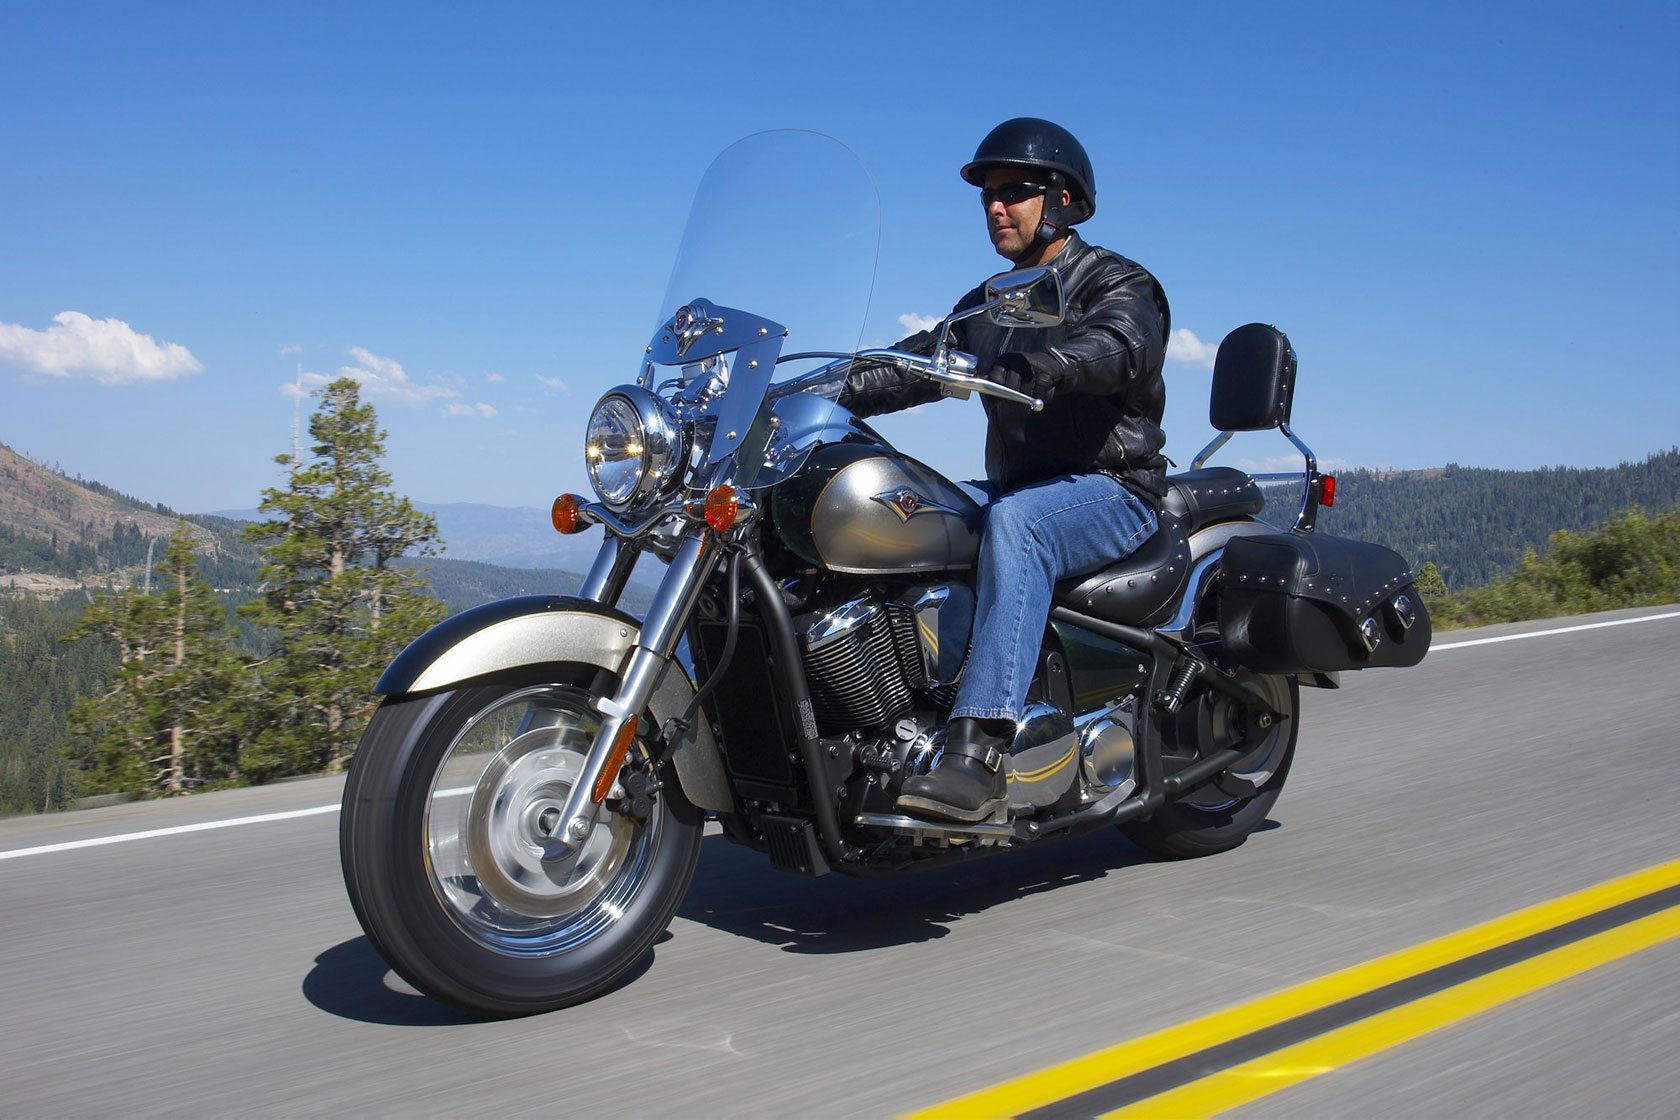 Kawasaki Vulcan 900 Custom Wiring Diagram | Wiring Liry on triumph thunderbird 900 wiring diagram, kawasaki vulcan 500 wiring diagram, kawasaki vulcan chopper, kawasaki vulcan ignition wiring diagram, h4 halogen headlight wiring diagram, honda shadow aero wiring diagram, dpdt switch wiring diagram, kawasaki vulcan classic, kawasaki vulcan 800 wiring diagram, kawasaki vulcan motorcycles, kawasaki vulcan accessories, kawasaki vulcan 2000 wiring diagram, kawasaki vulcan cruiser, knob and tube wiring diagram, ibanez pickup wiring diagram, kawasaki vulcan 1500 wiring diagram, kawasaki vulcan handlebars, kawasaki vulcan 750 wiring diagram, yamaha v star 650 wiring diagram, water temperature gauge wiring diagram,